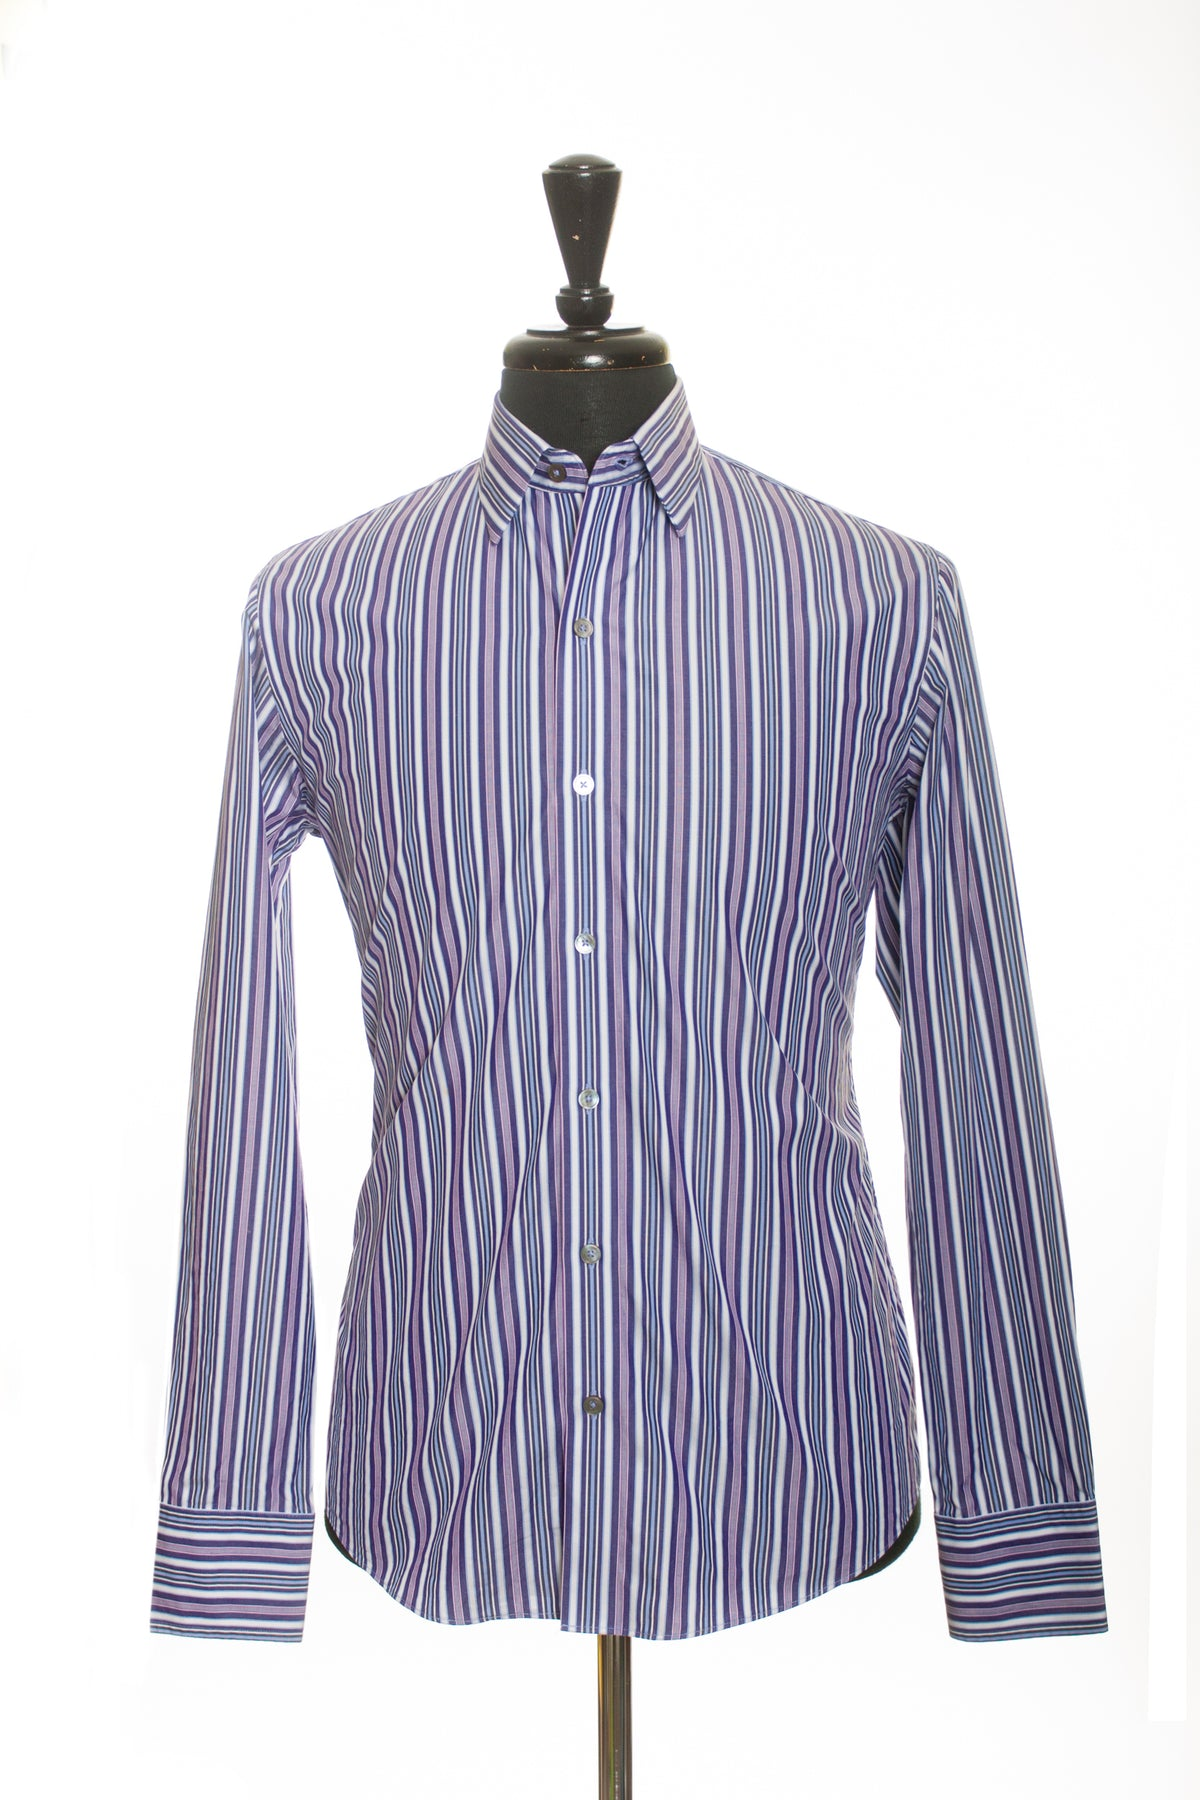 Zachary Prell Purple Striped Shirt